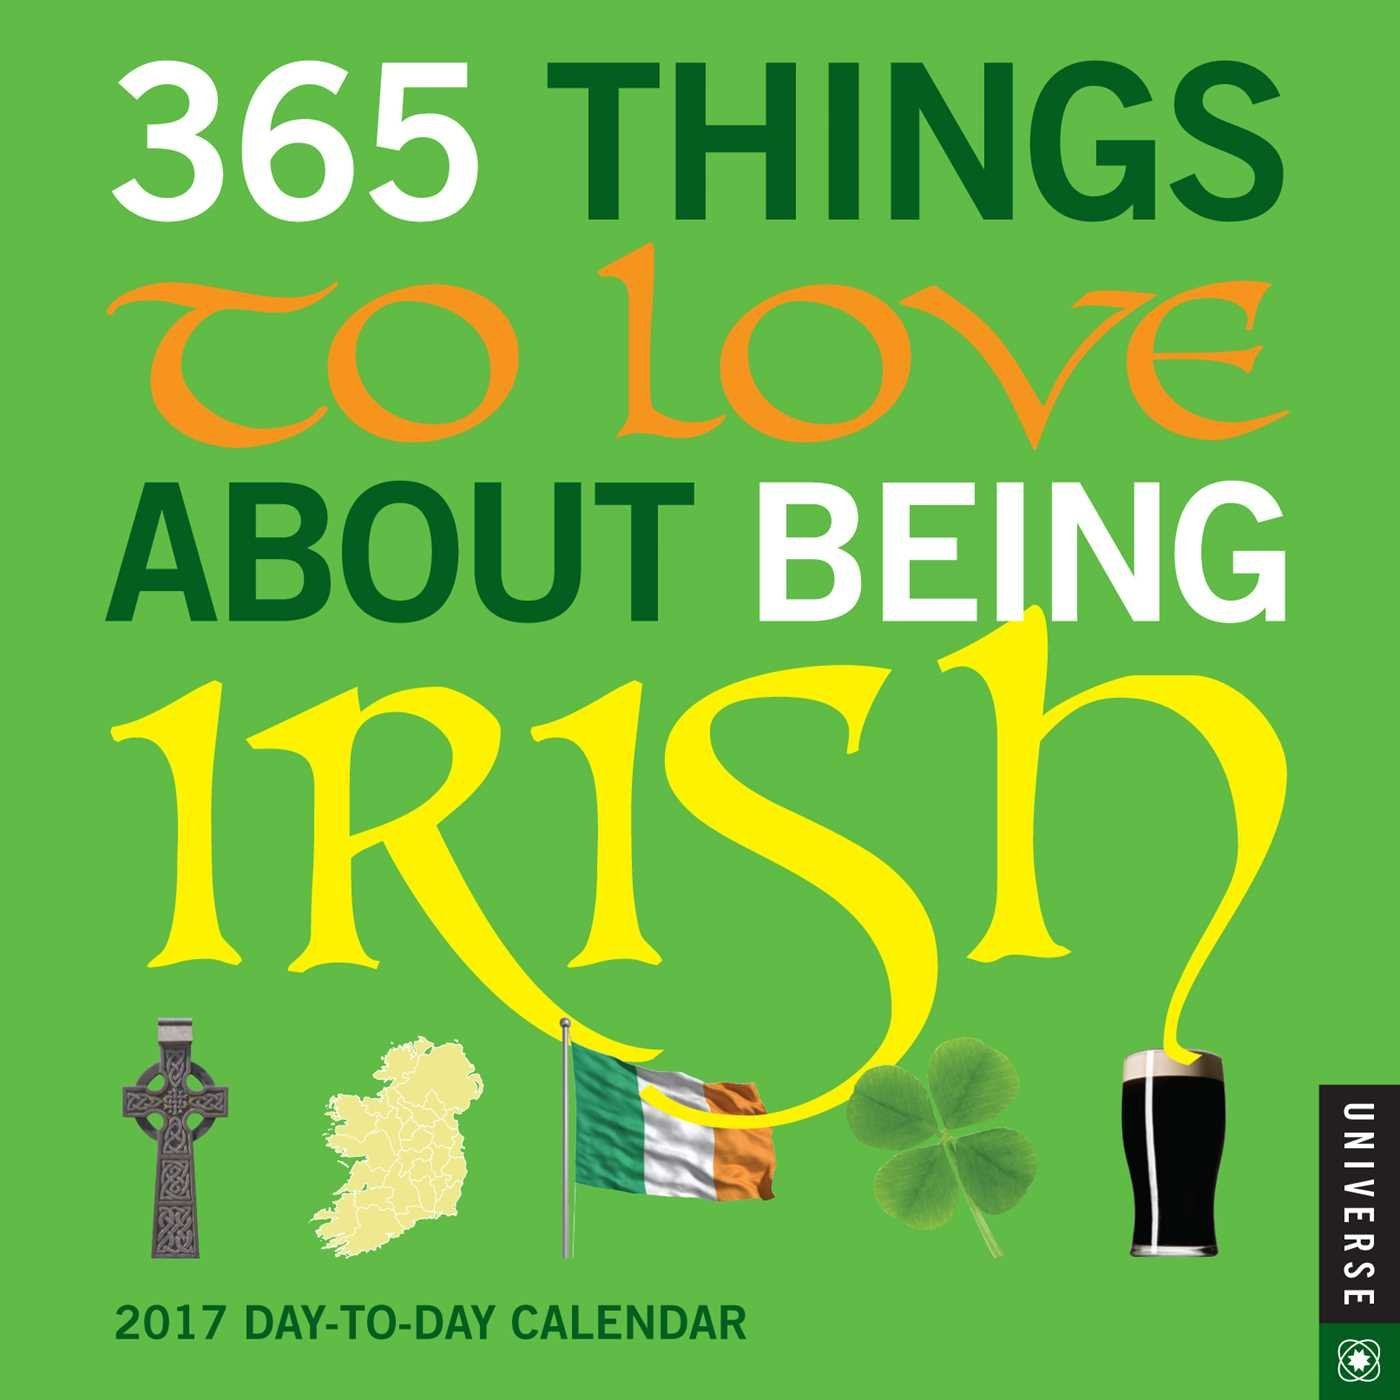 365 Things to Love About Being Irish 2017 Day-to-Day Calendar by Universe Publishing. Ireland. Height: 5.500 inches. Width: 5.500 inches. Manufactured by: Andrews McMeel Publishing.